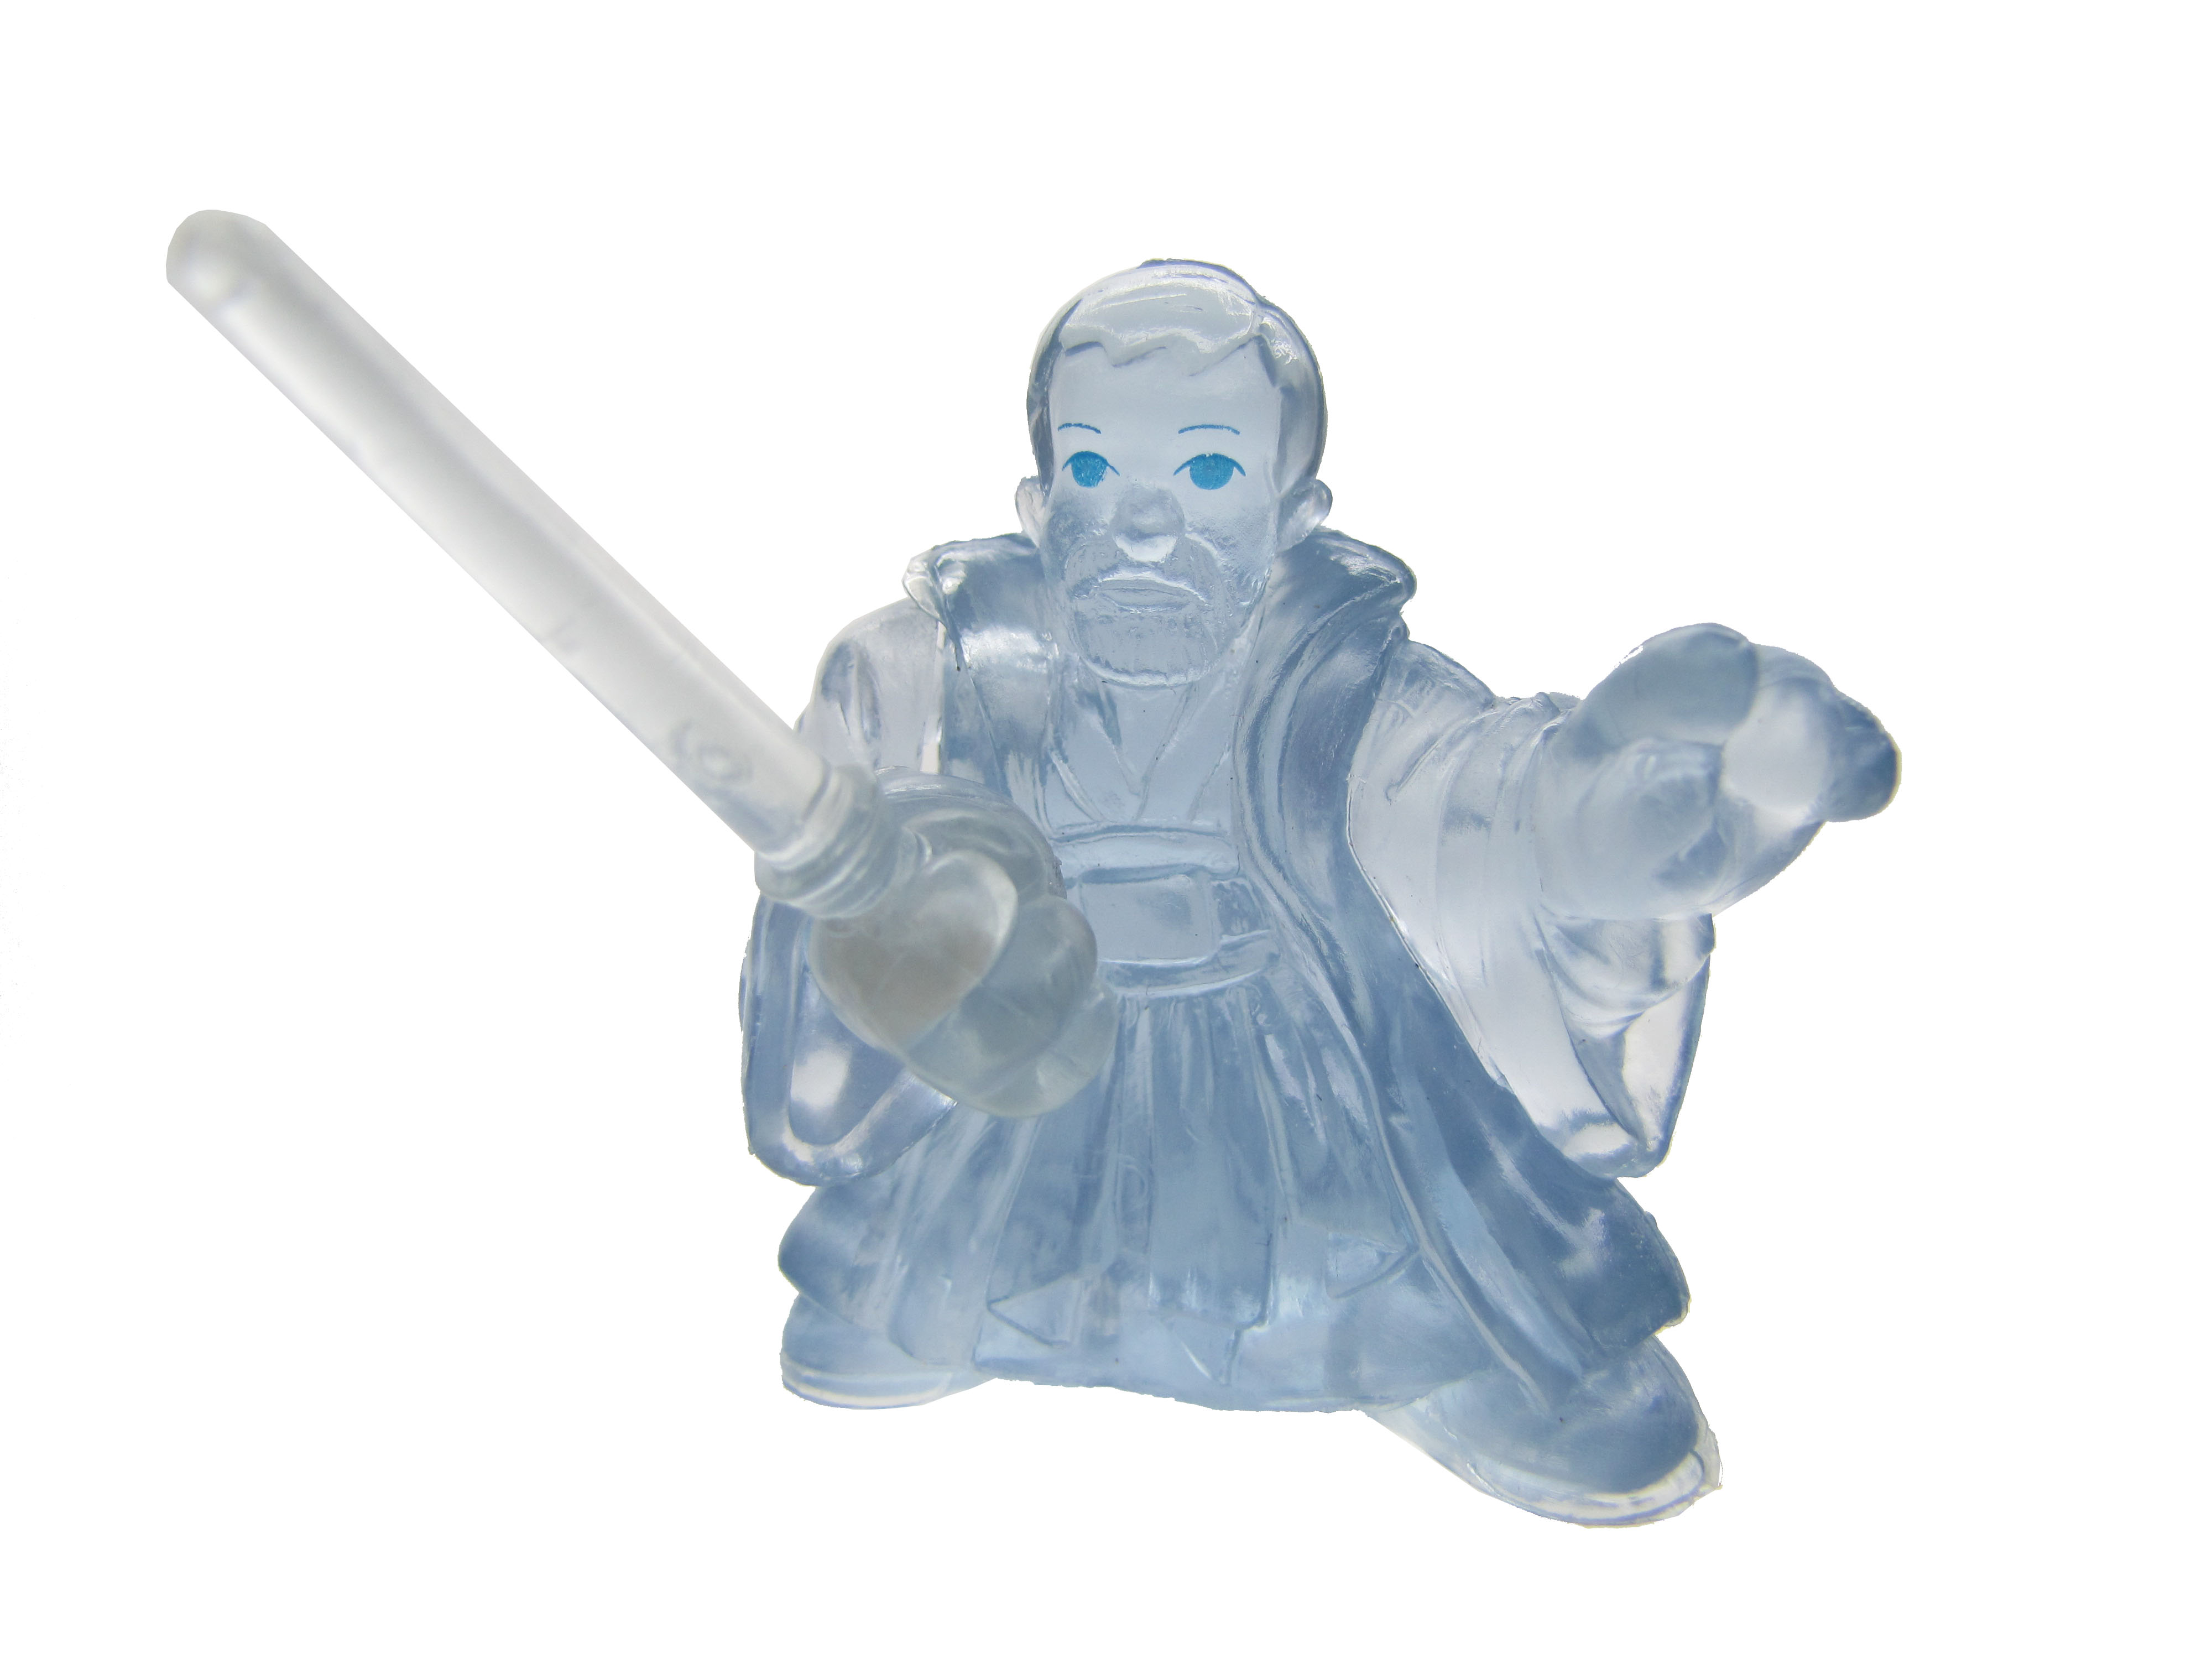 Star Wars Galactic Heroes ENDOR CELEBRATION SPIRIT OF OBI-WAN